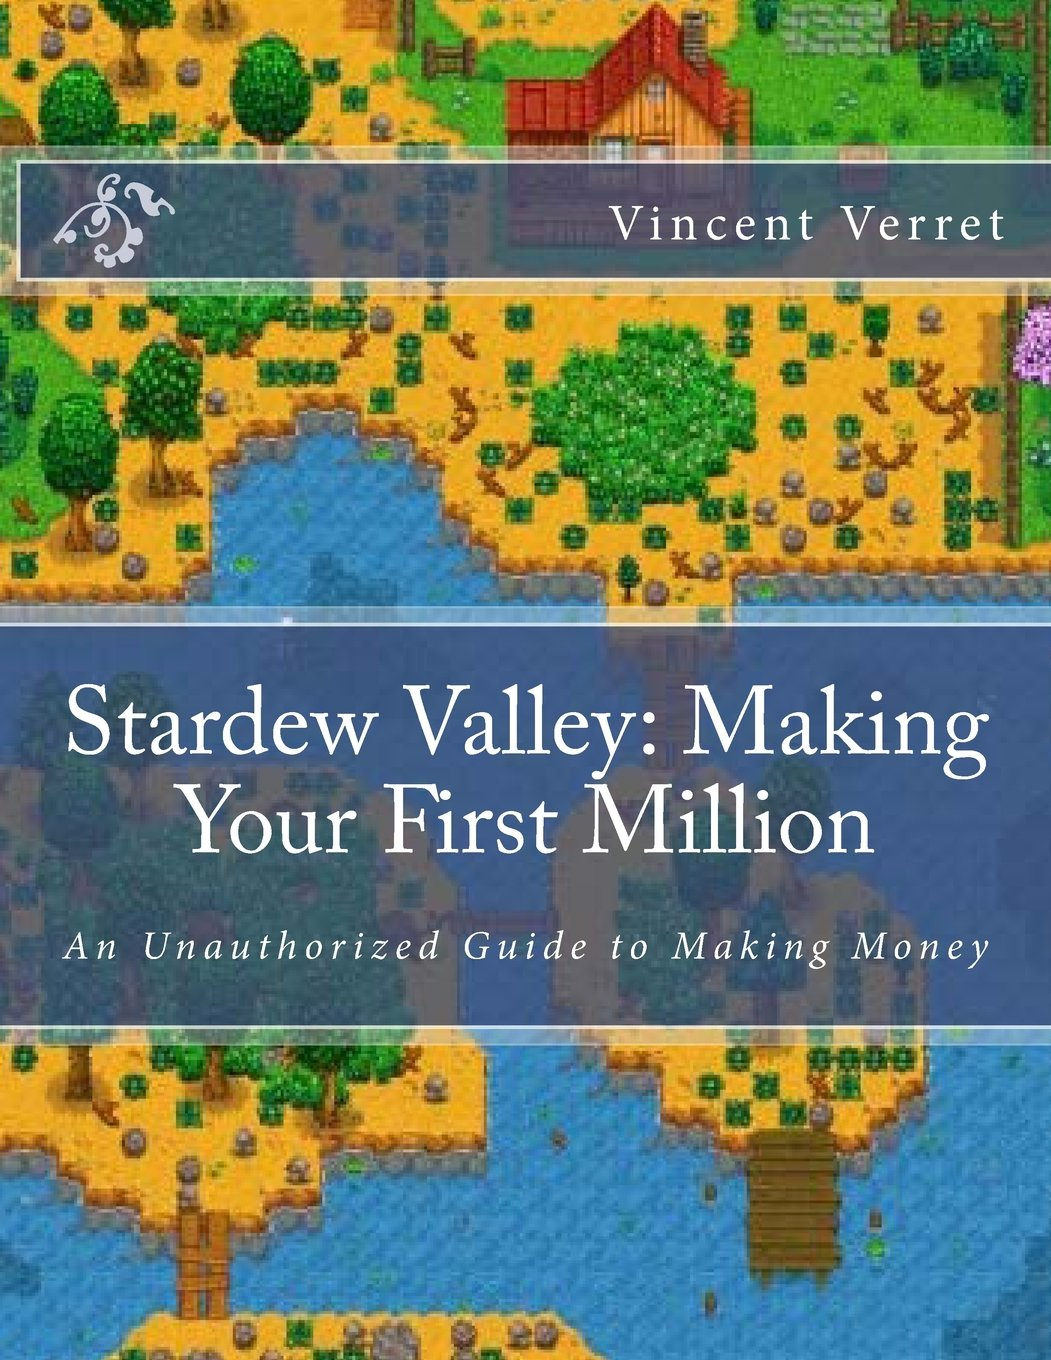 Stardew Valley: Making Your First Million: An Unauthorized Guide to